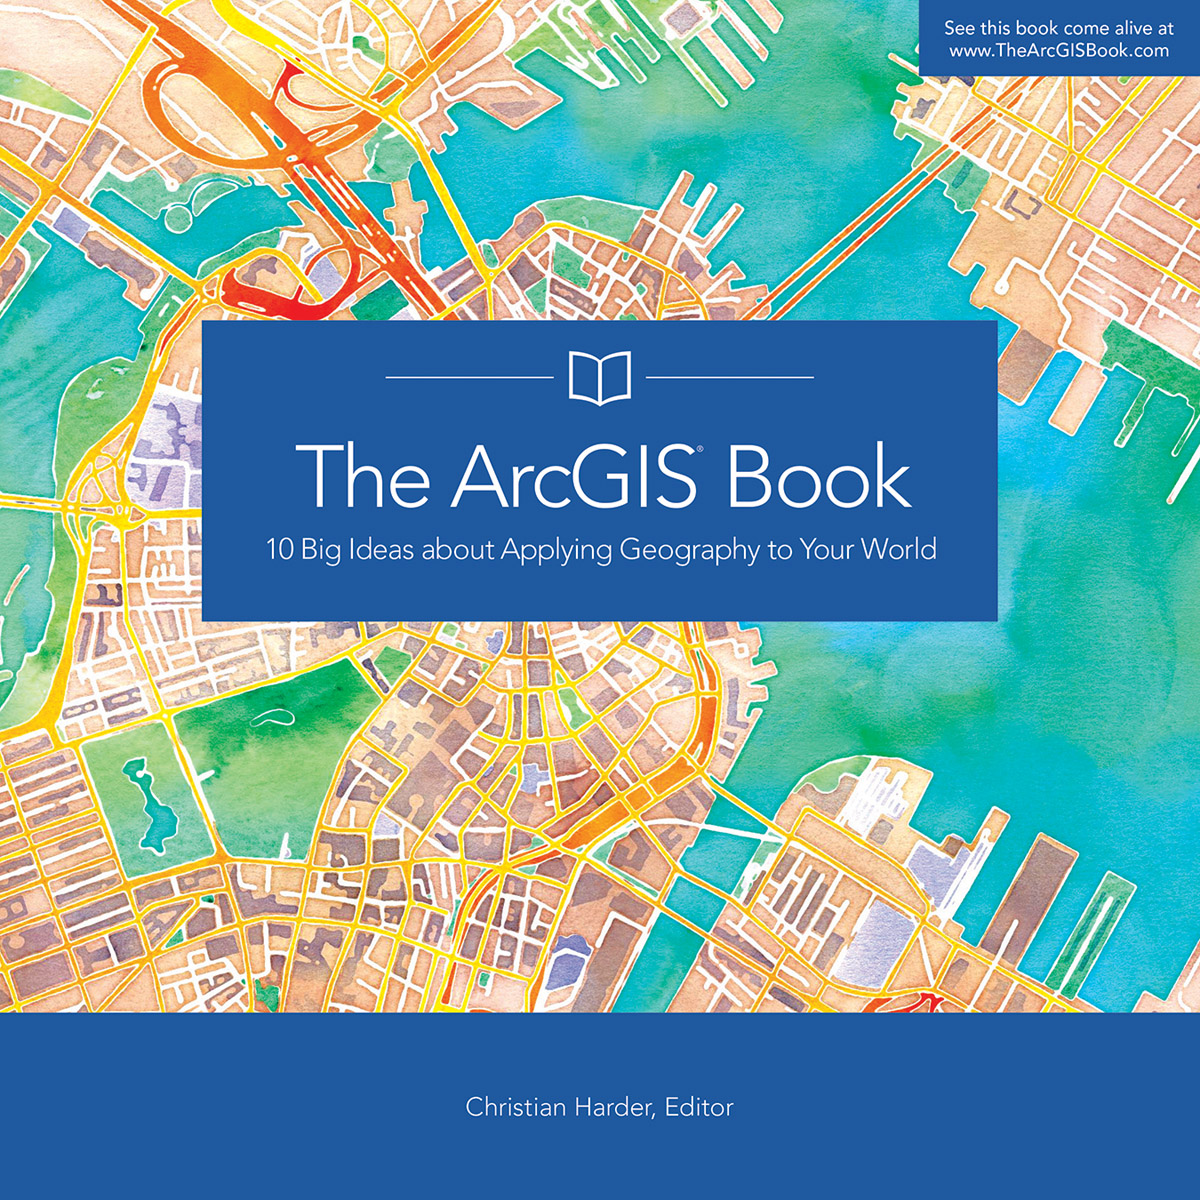 The ArcGIS Book: 10 Big Ideas about Applying Geography to ... on logic mapping, technology mapping, language mapping, industry mapping, identity mapping, africa mapping, ocean mapping, food mapping,